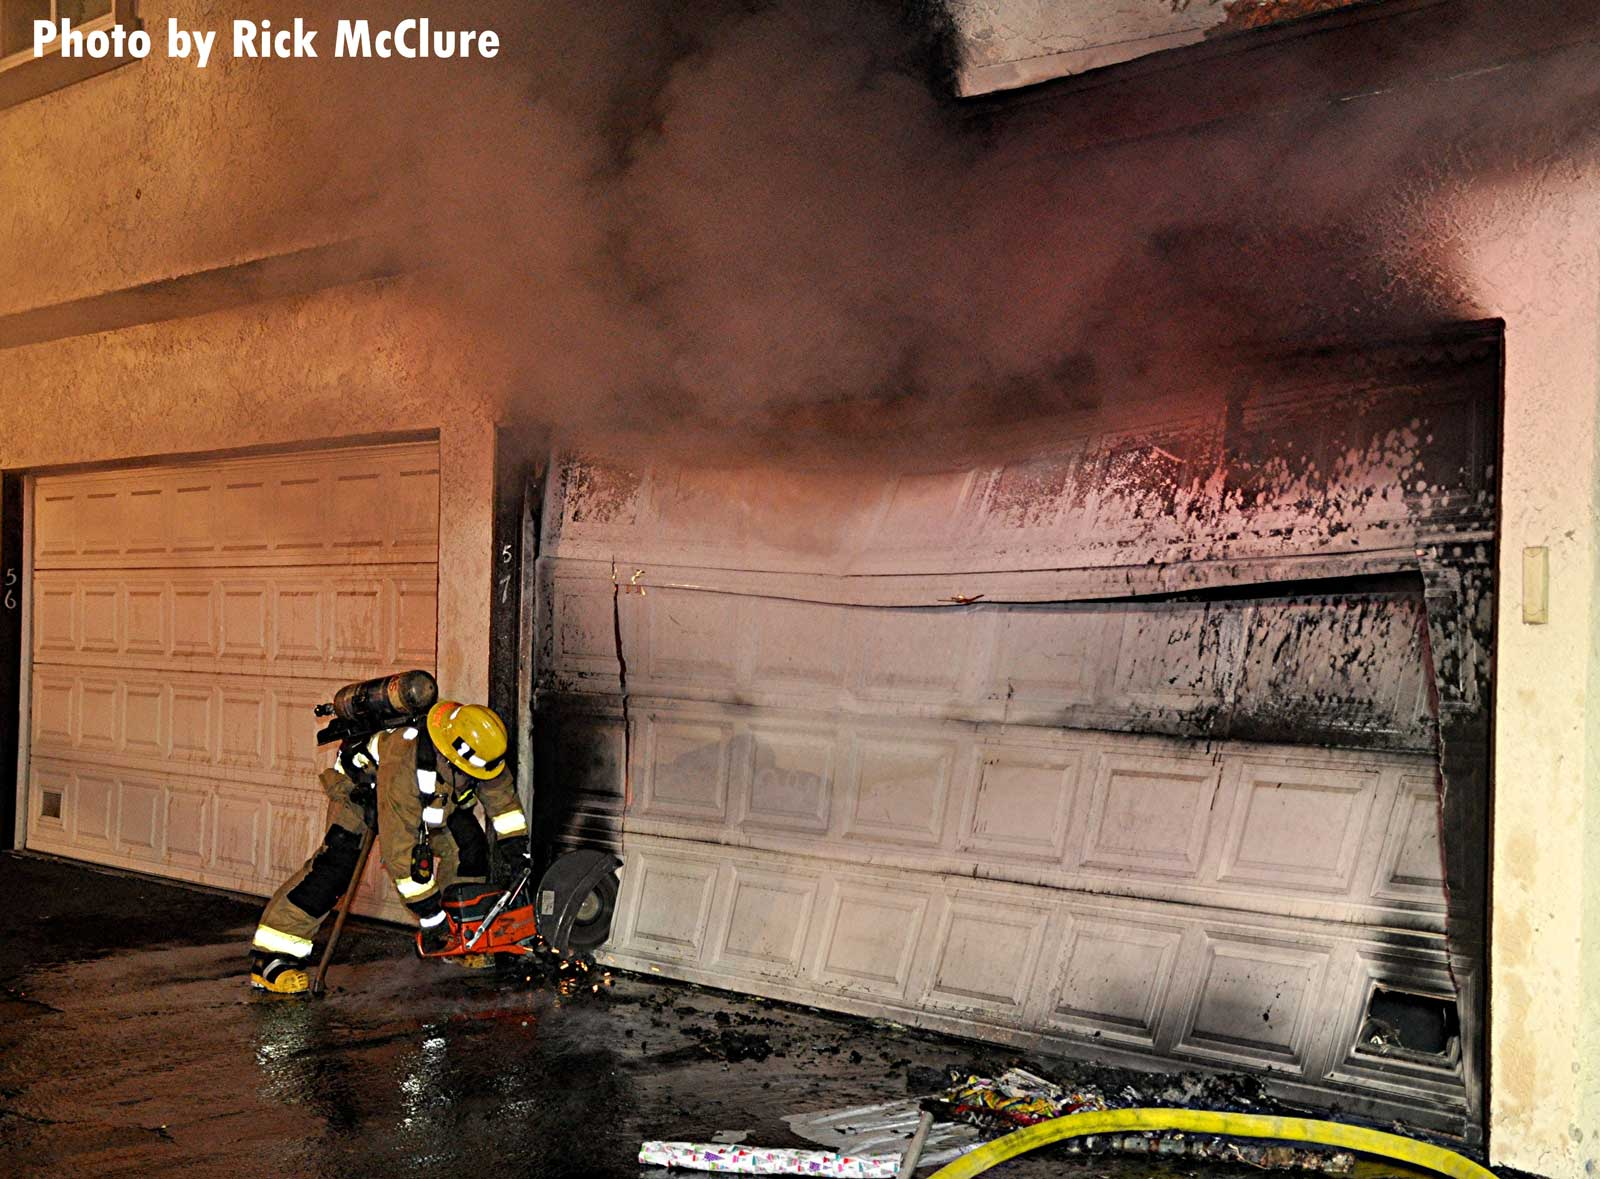 Smoke showing from garage with firefighter and tools